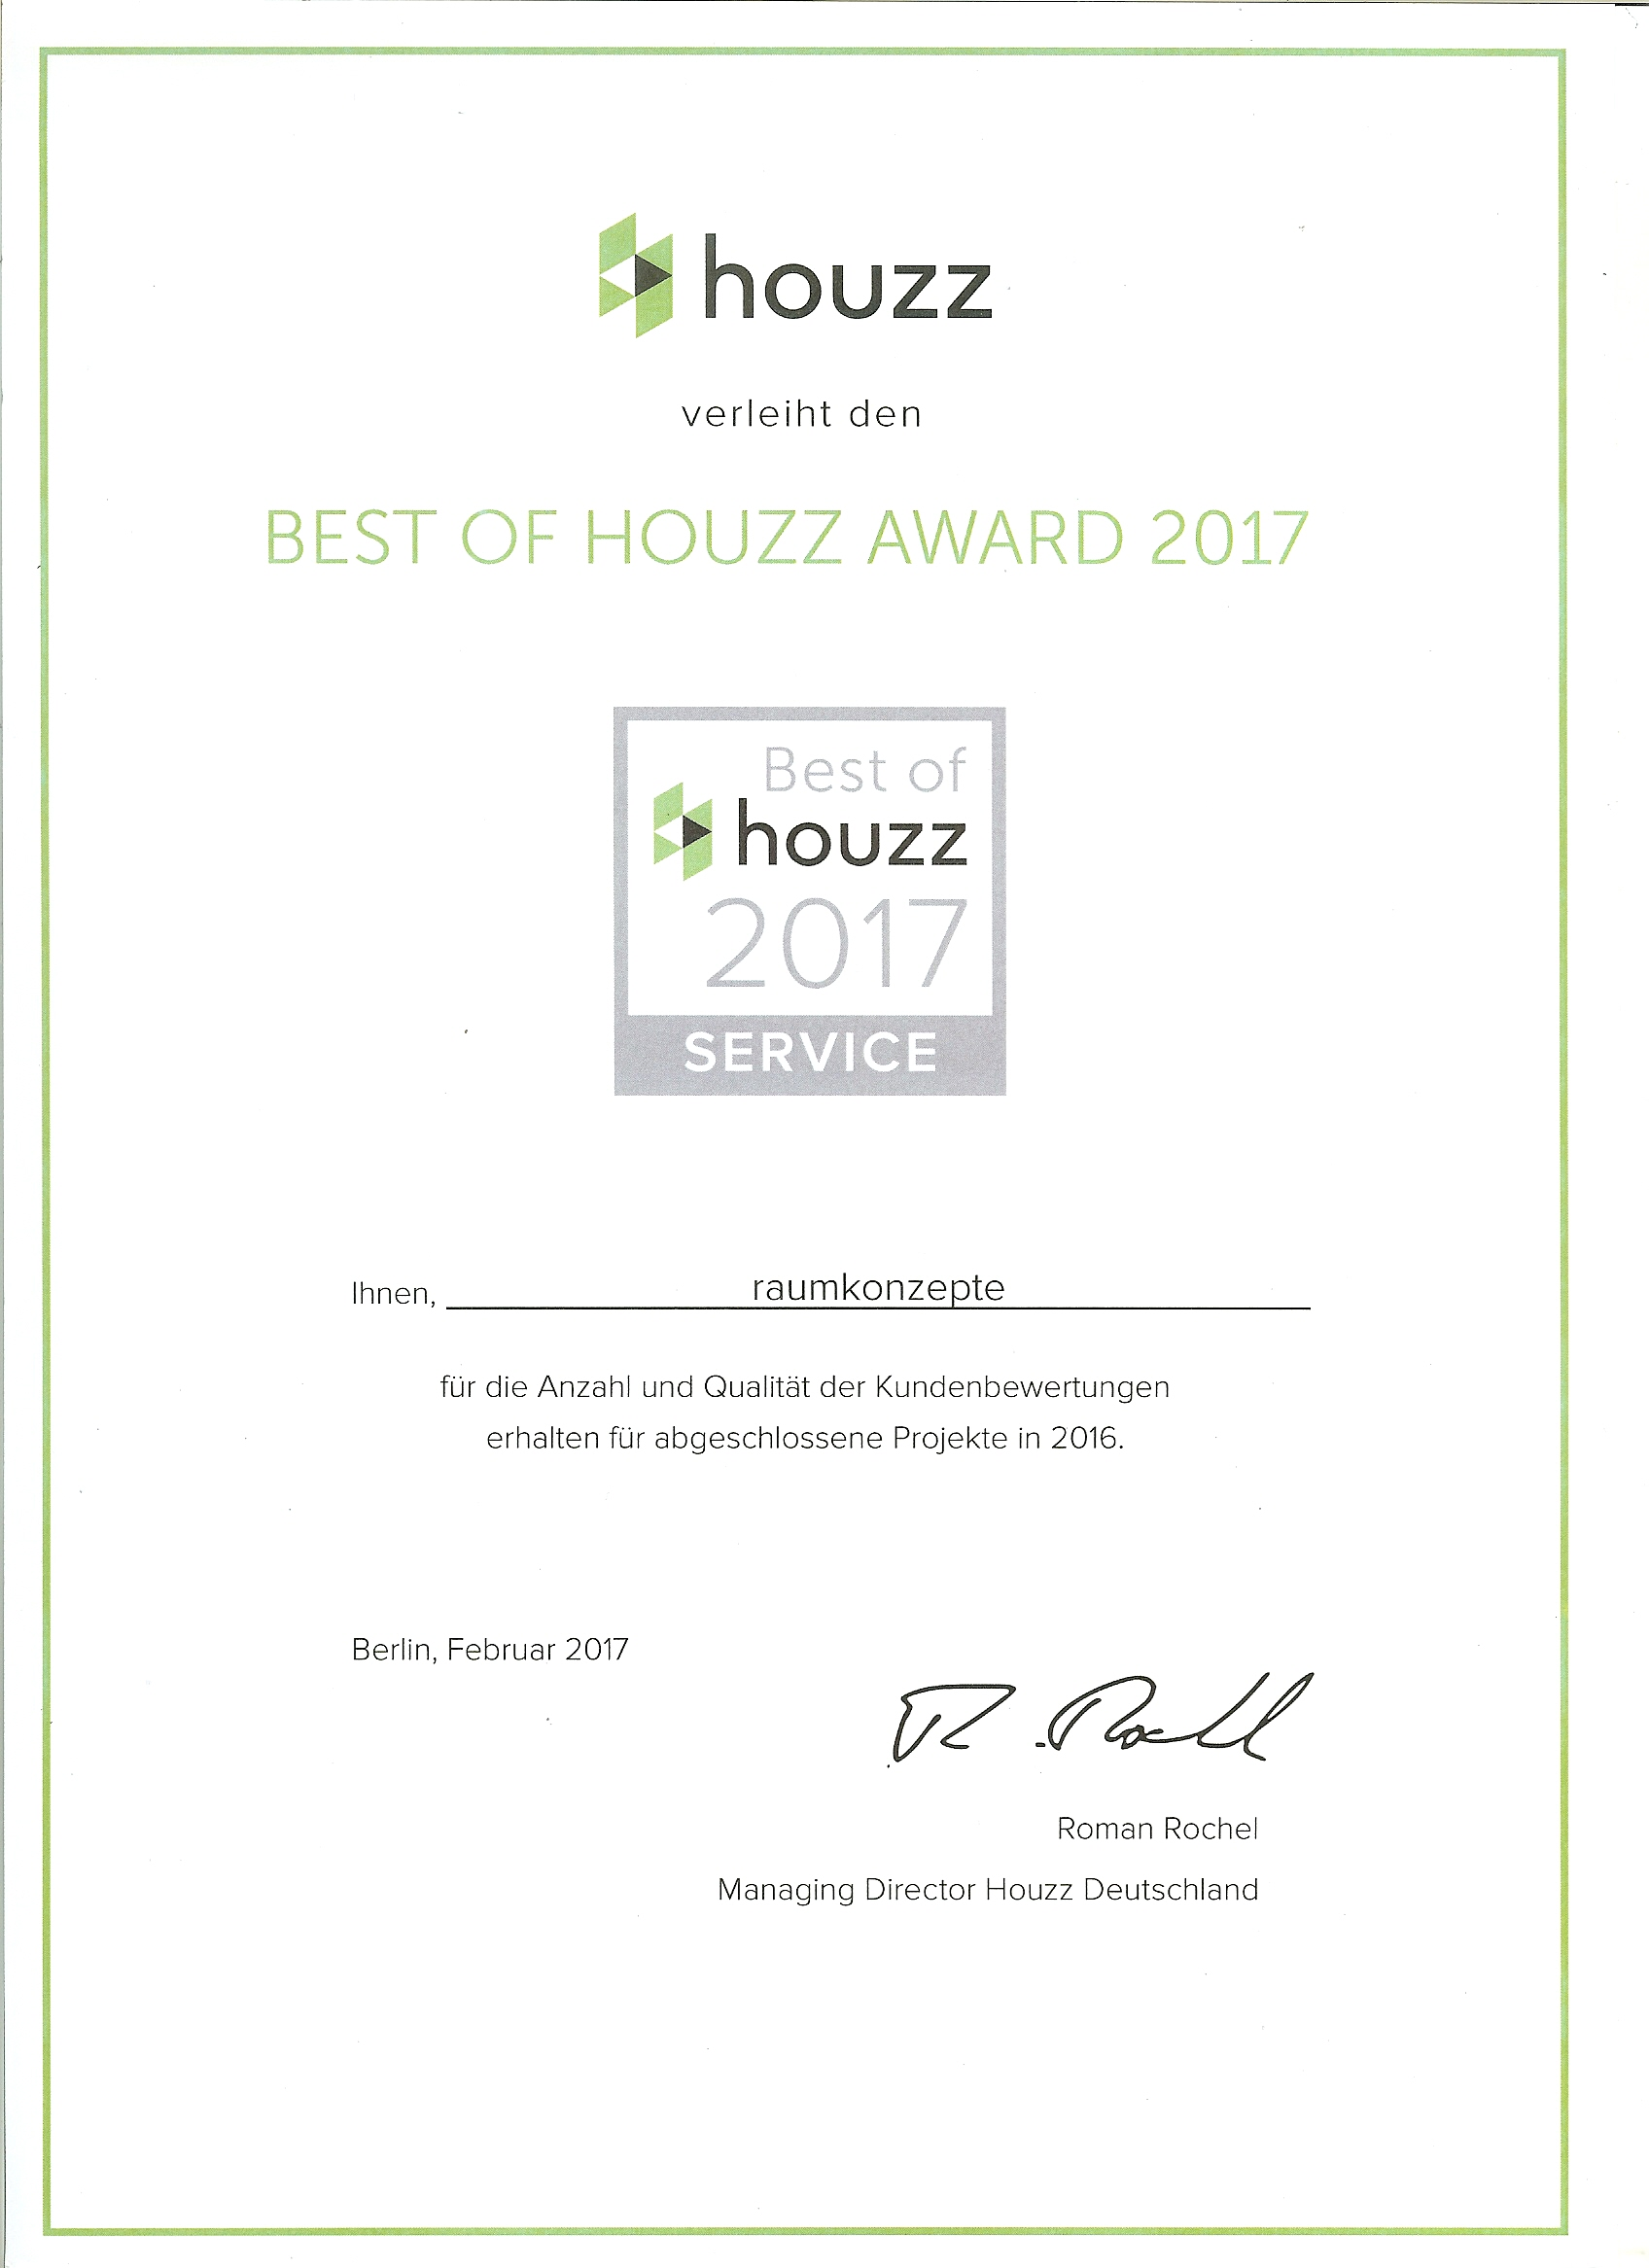 Best of Houzz Award 2017